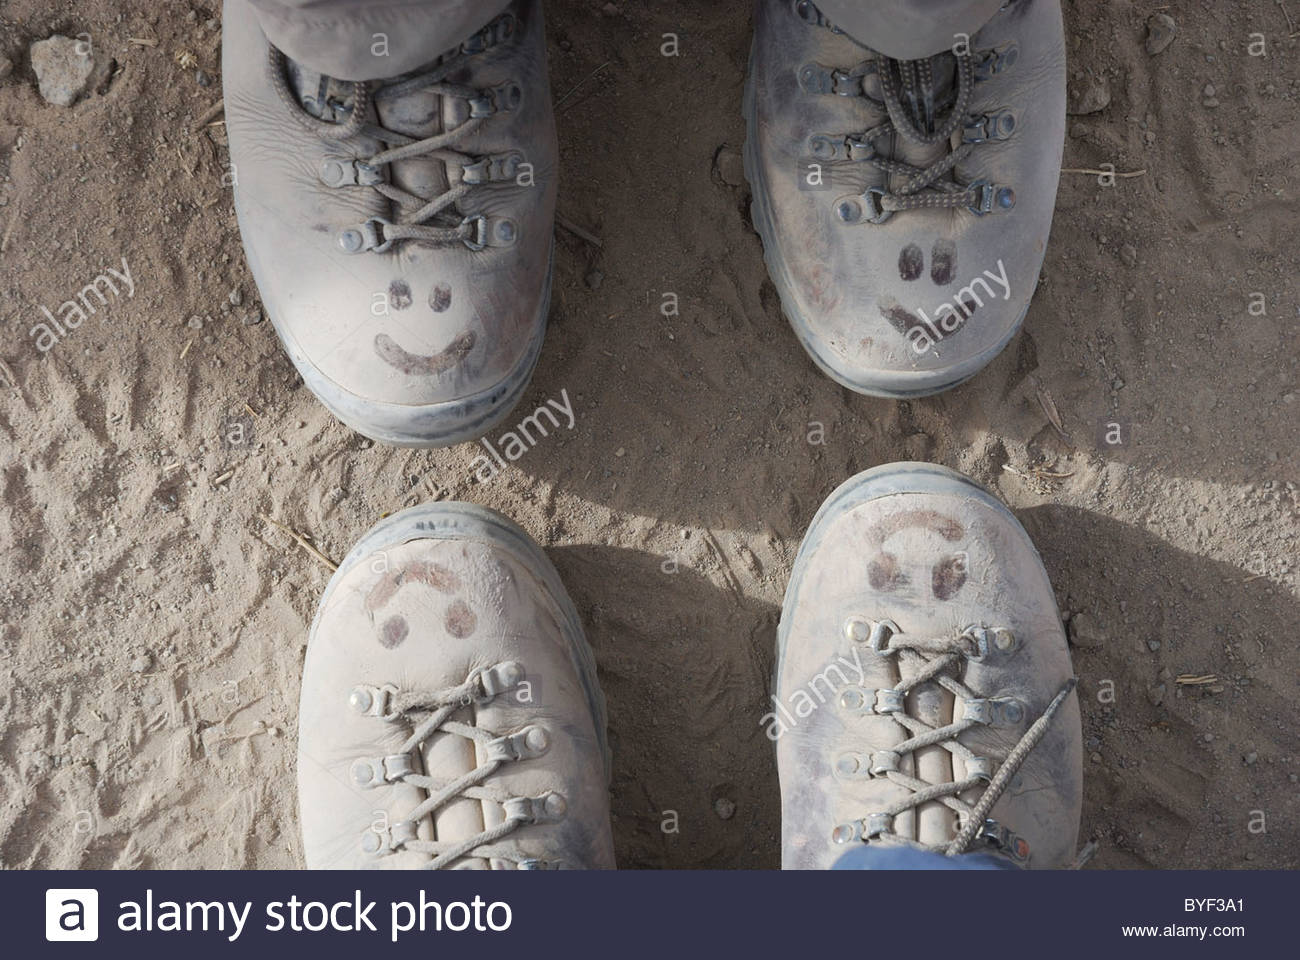 smiley-faces-on-dusty-walking-boots-BYF3A1.jpg